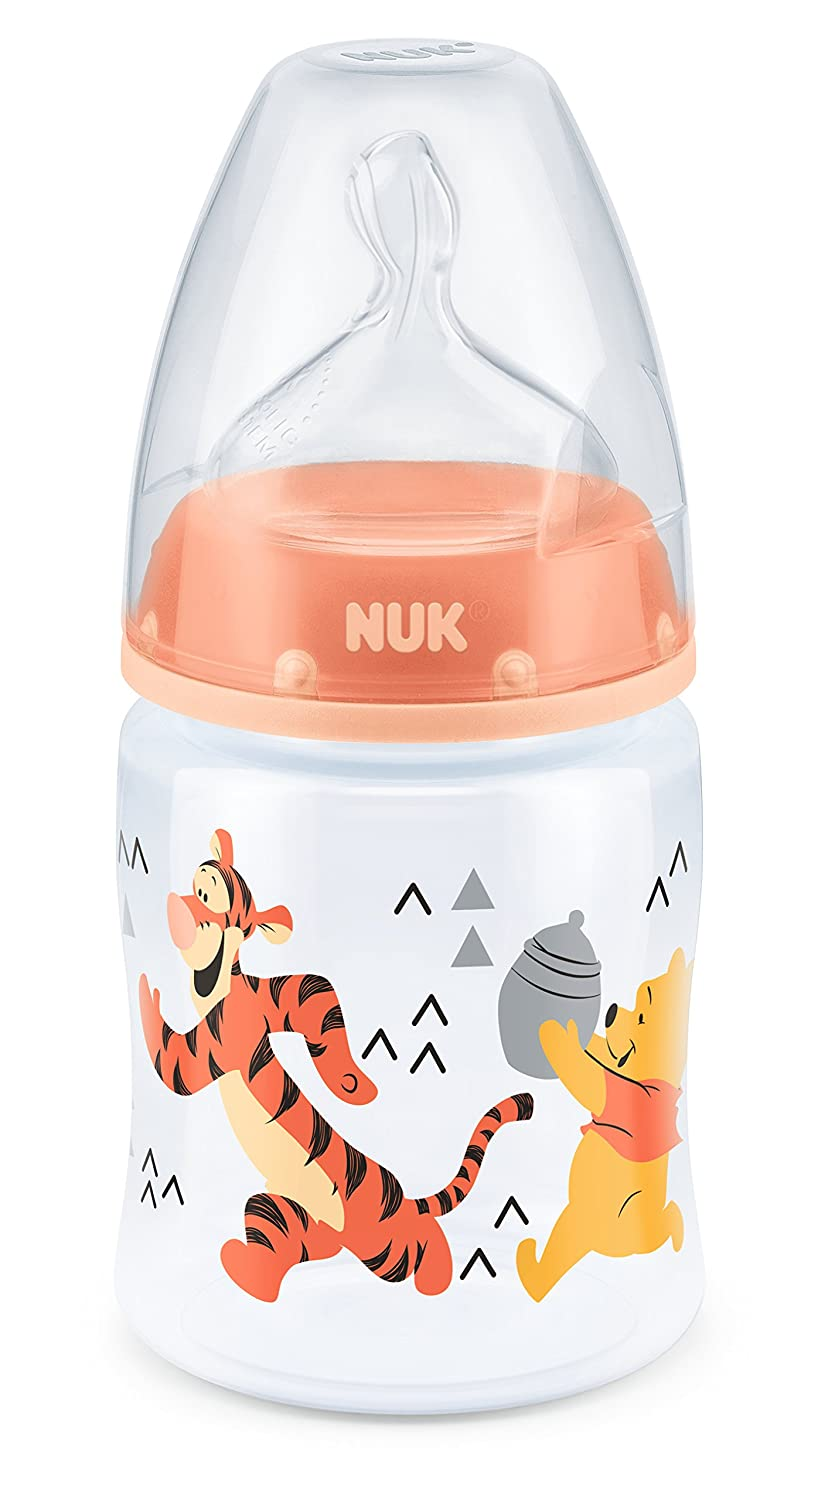 NUK First Choice+ Winnie The Pooh 150ml Bottle with Silicone Teat (0-6m, design may vary) Mapa Spontex (UK) Ltd 10743700